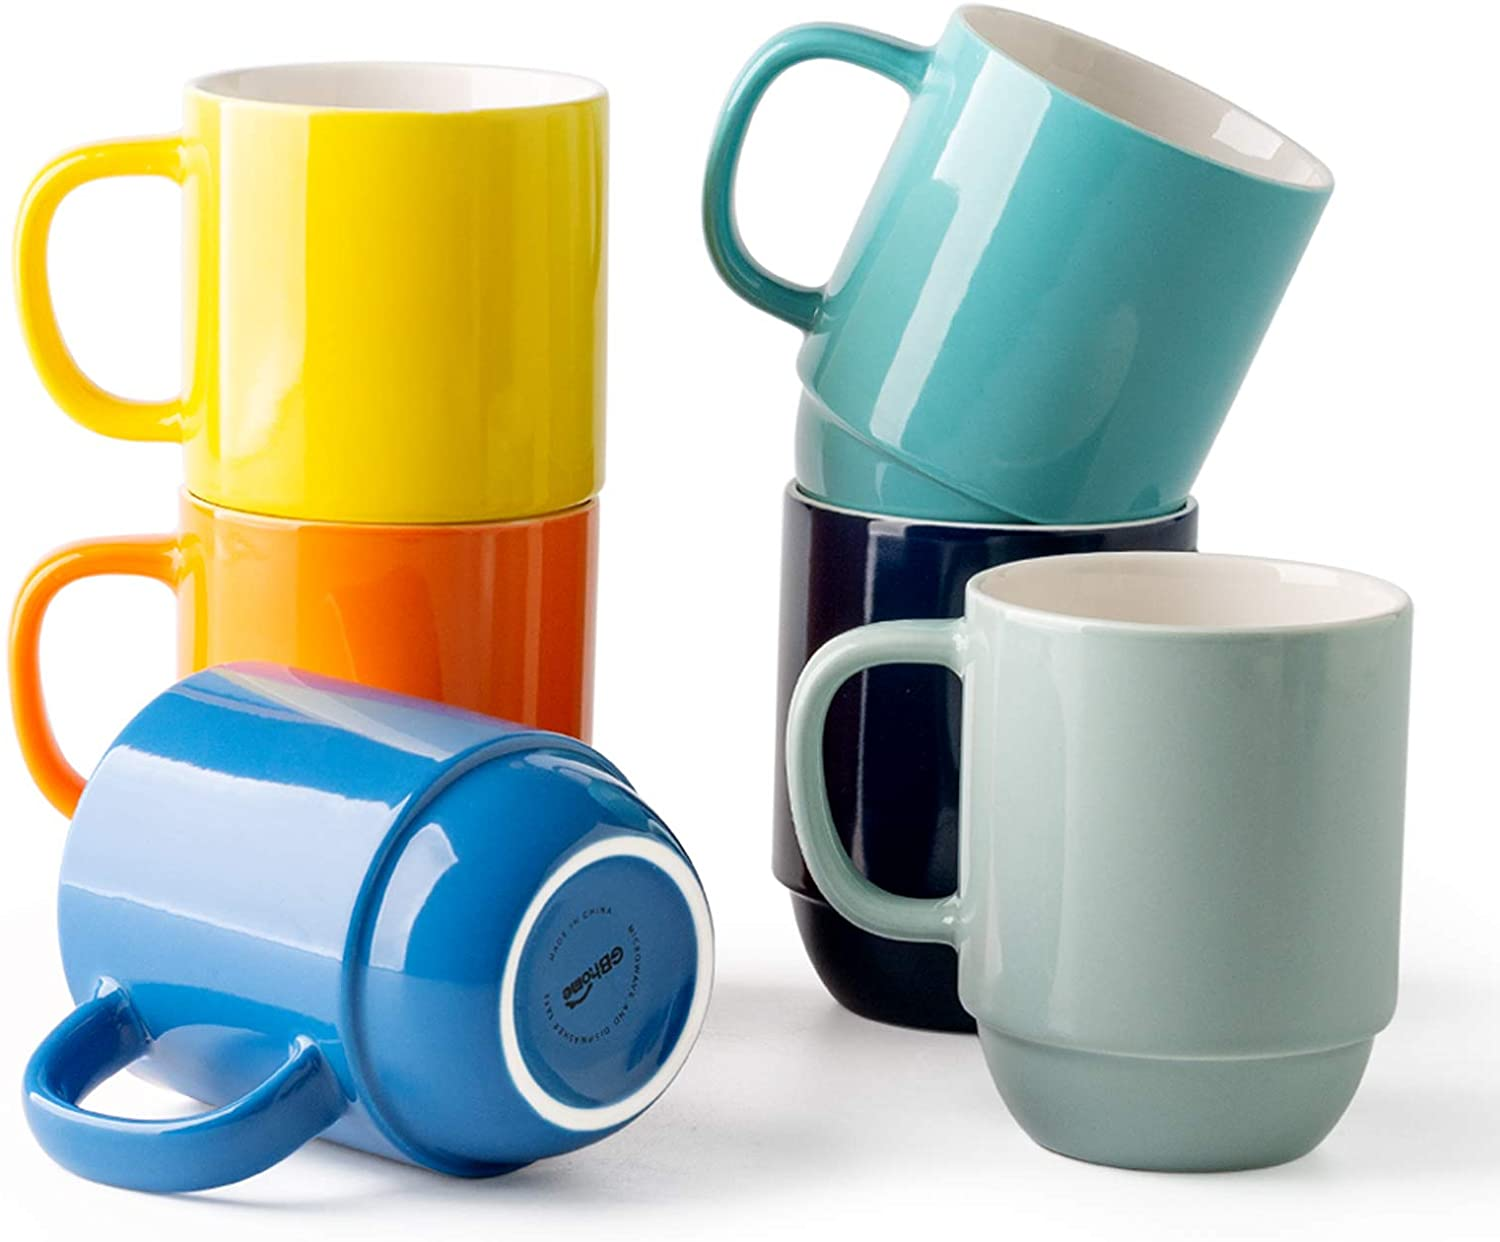 GBHOME Stackable Coffee Mugs Set of 6, 16 OZ Ceramic Coffee Mug Set for Women/Men/Office/Home/Gift, Hot Assorted Colors